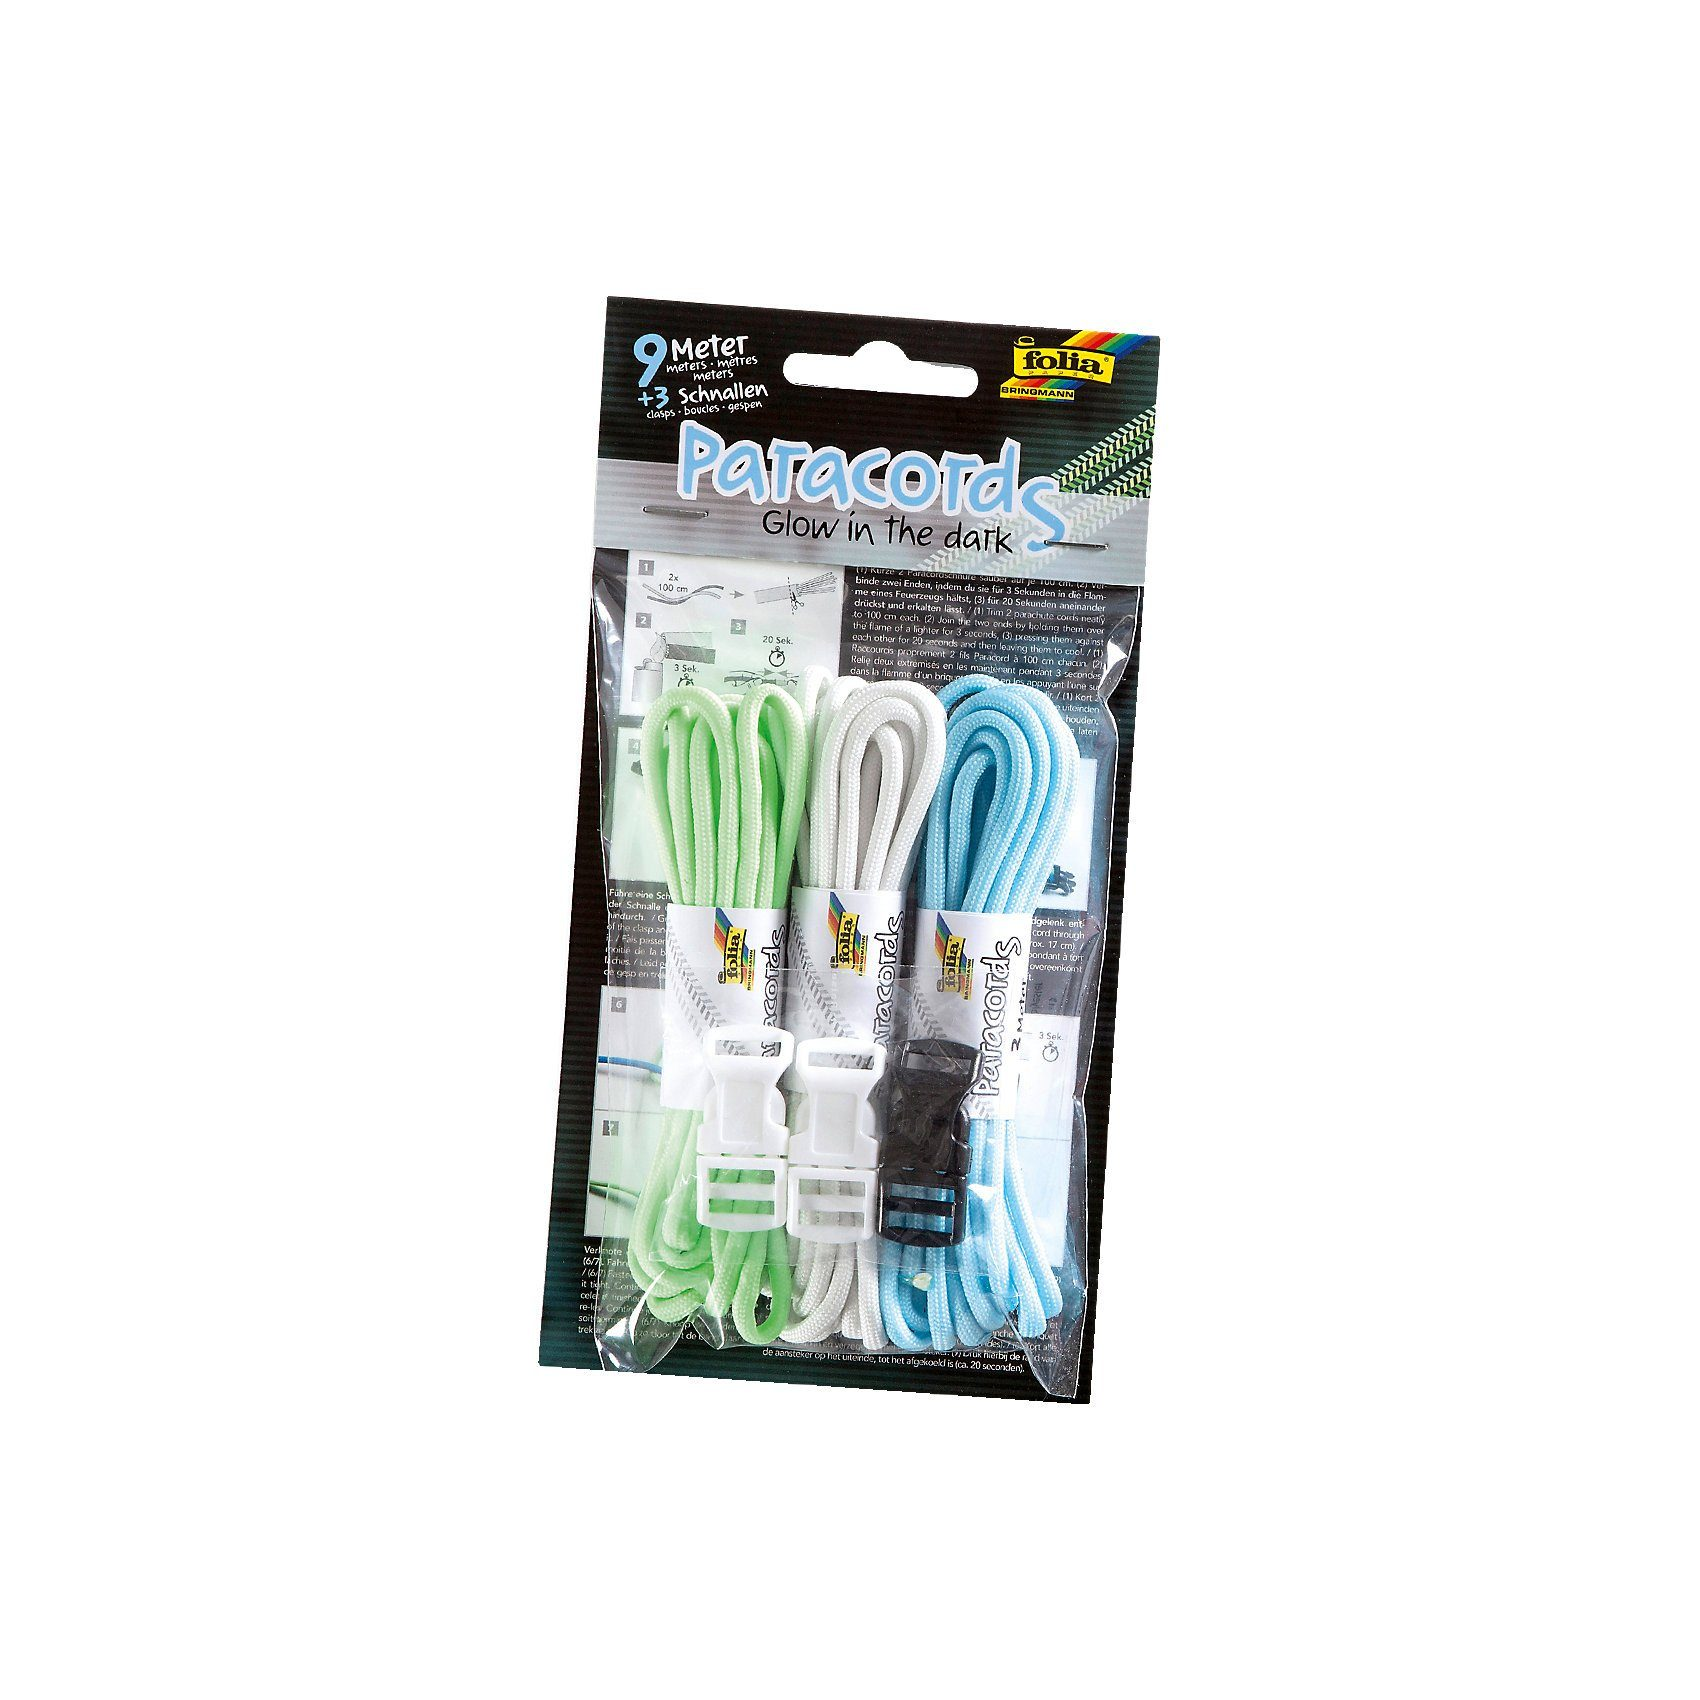 Folia Paracords Glow in the dark, 9 m & Zubehör